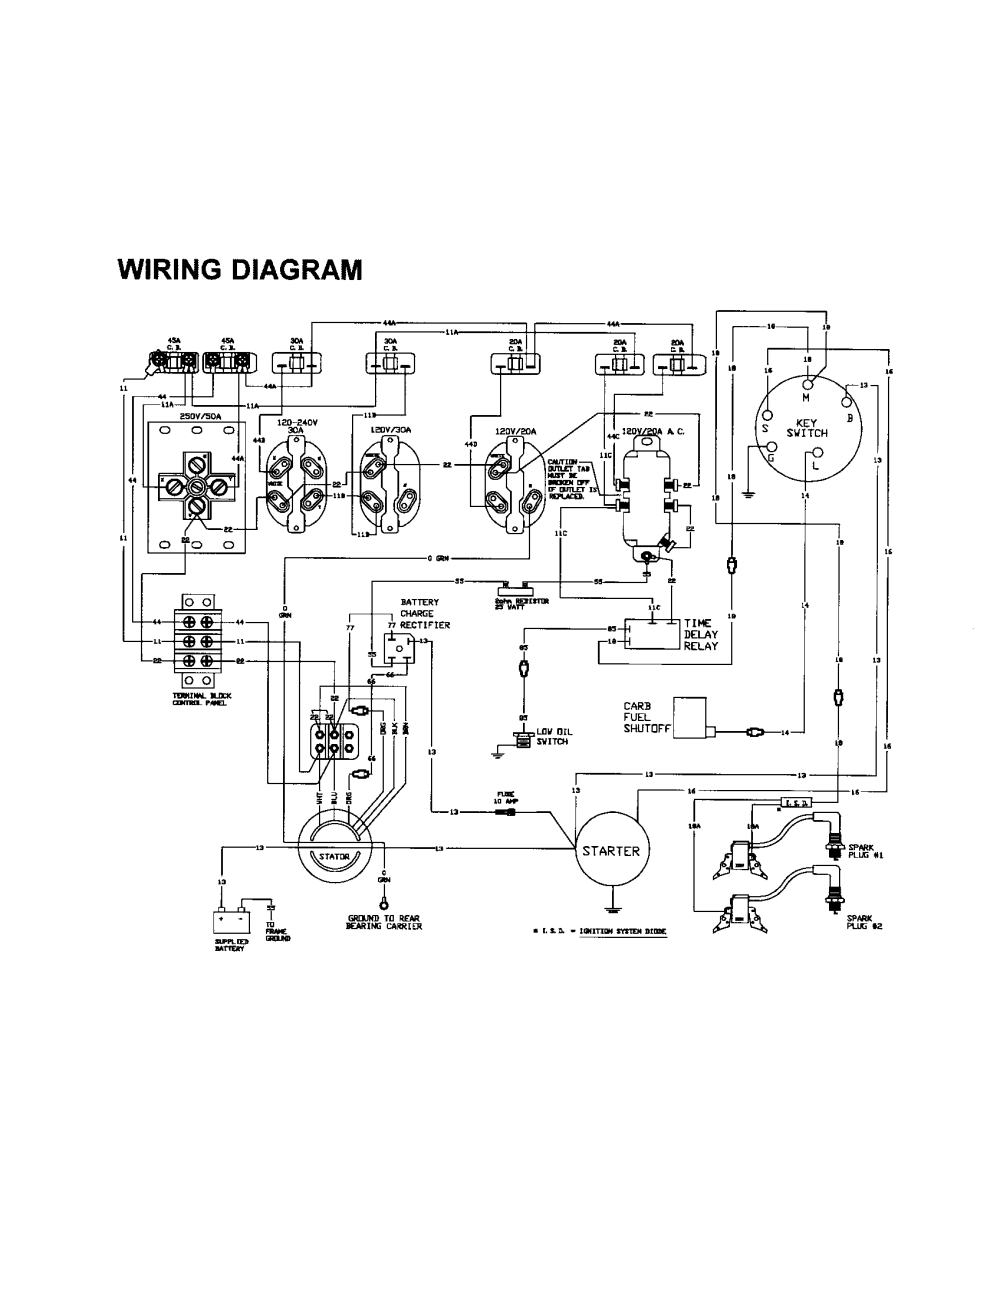 medium resolution of generac generator wiring schematic wiring diagram onlinegenerator generac wiring diagram simple wiring diagrams generac standby generator